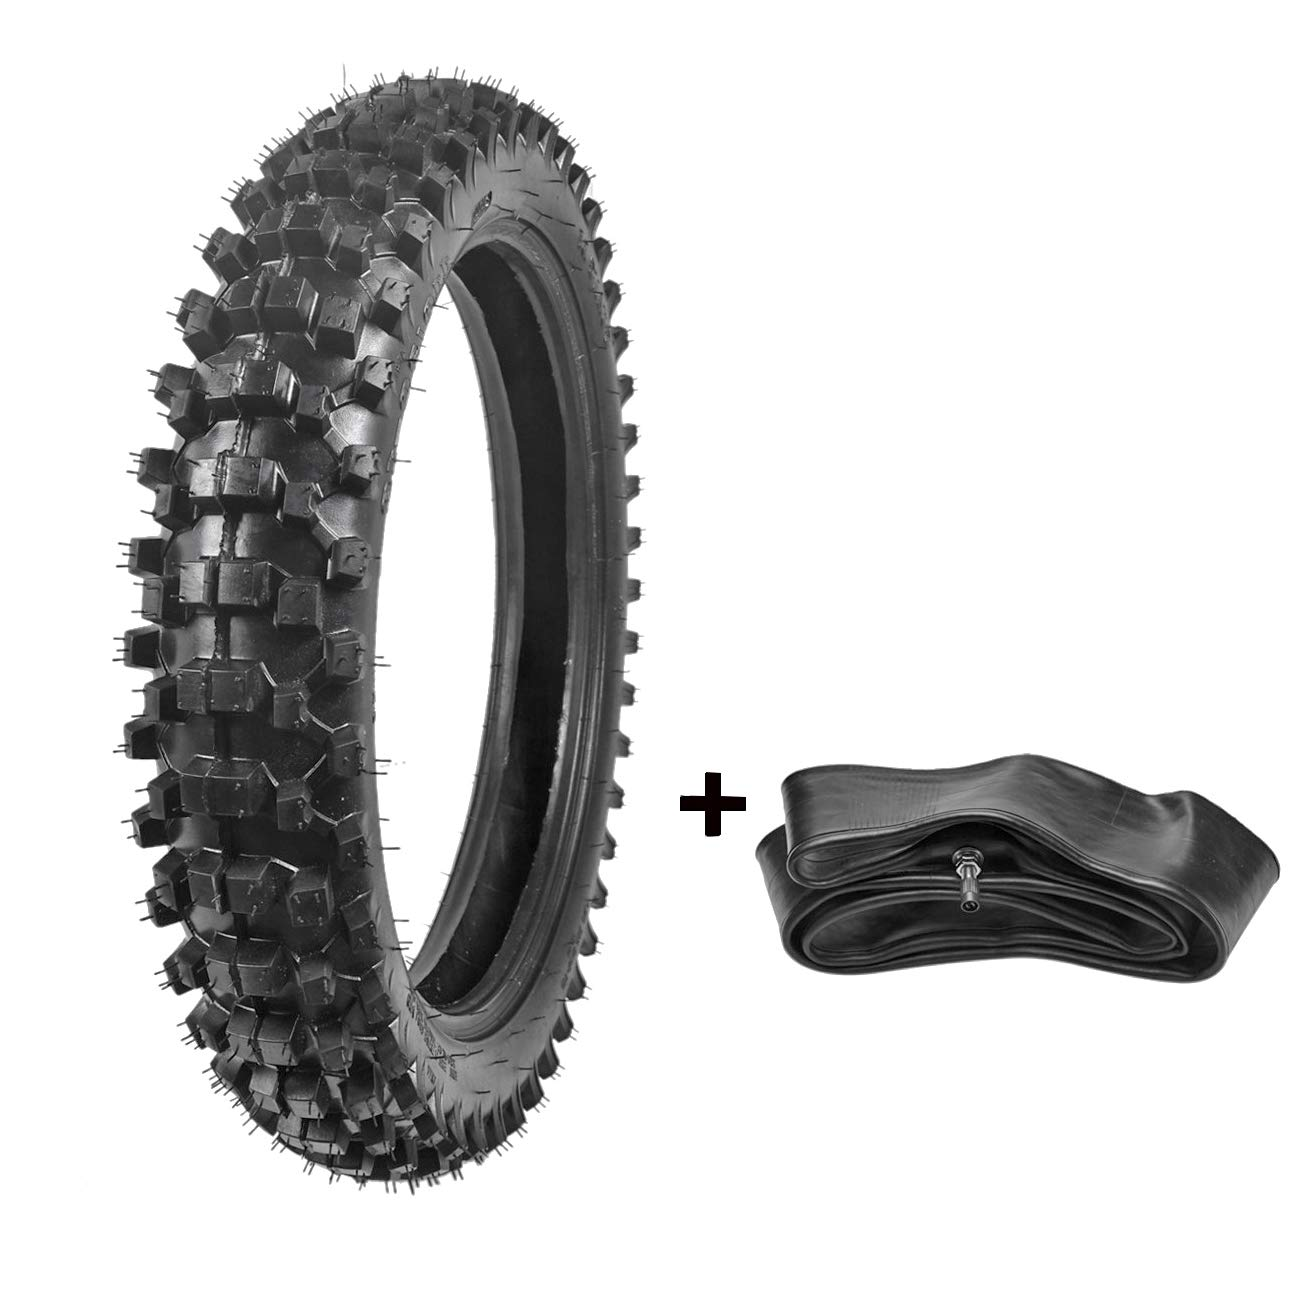 ZXTDR 110/90-18 Off Road Tire and Tube Set for Dirt Pit Bikes Mud Motocross